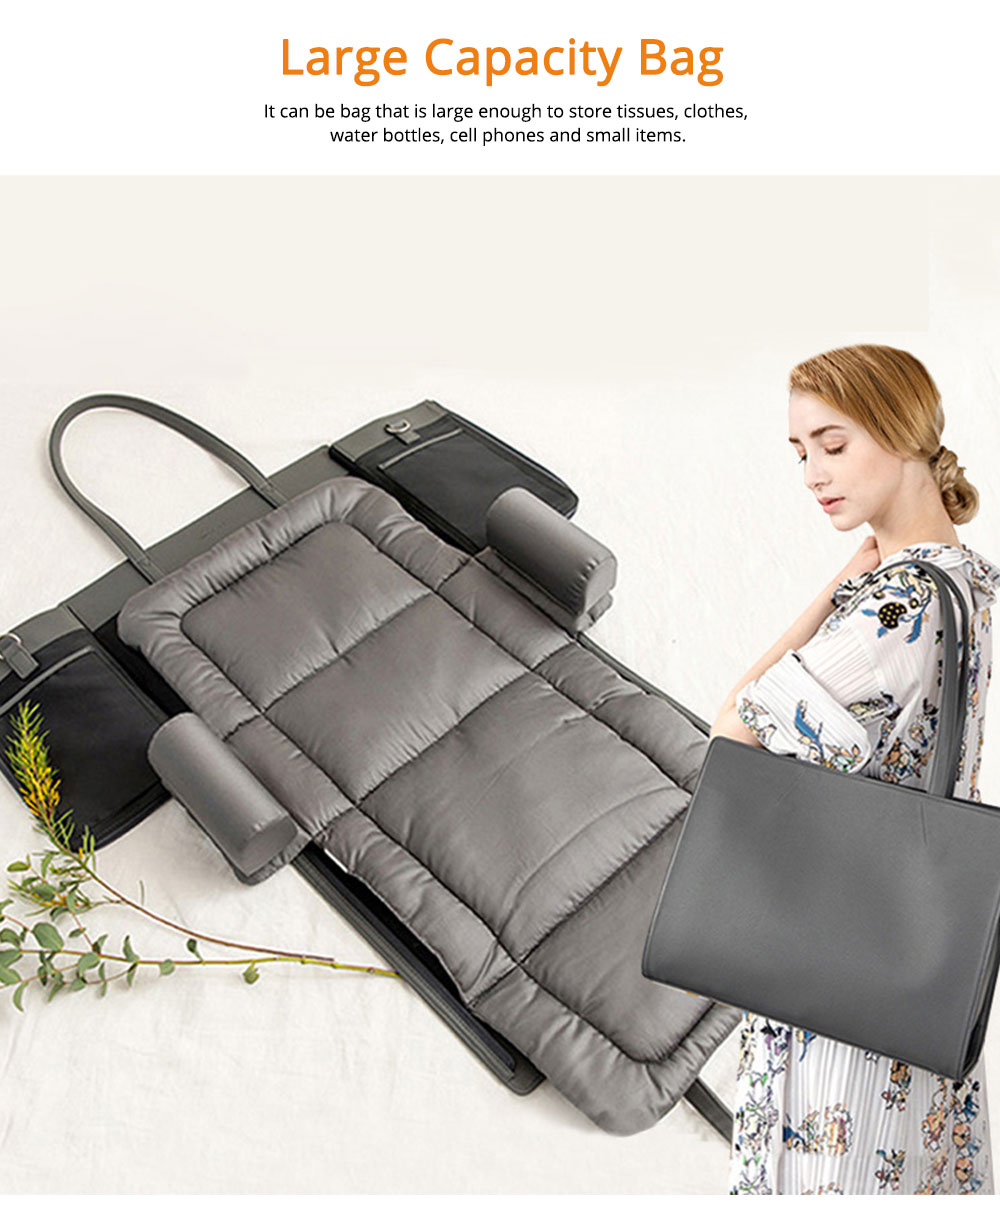 Cushion Leather Cotton Material Pressure-resistant for Baby Sleep Bed Collapsible Portable for Mom Bag Soft Mat 1